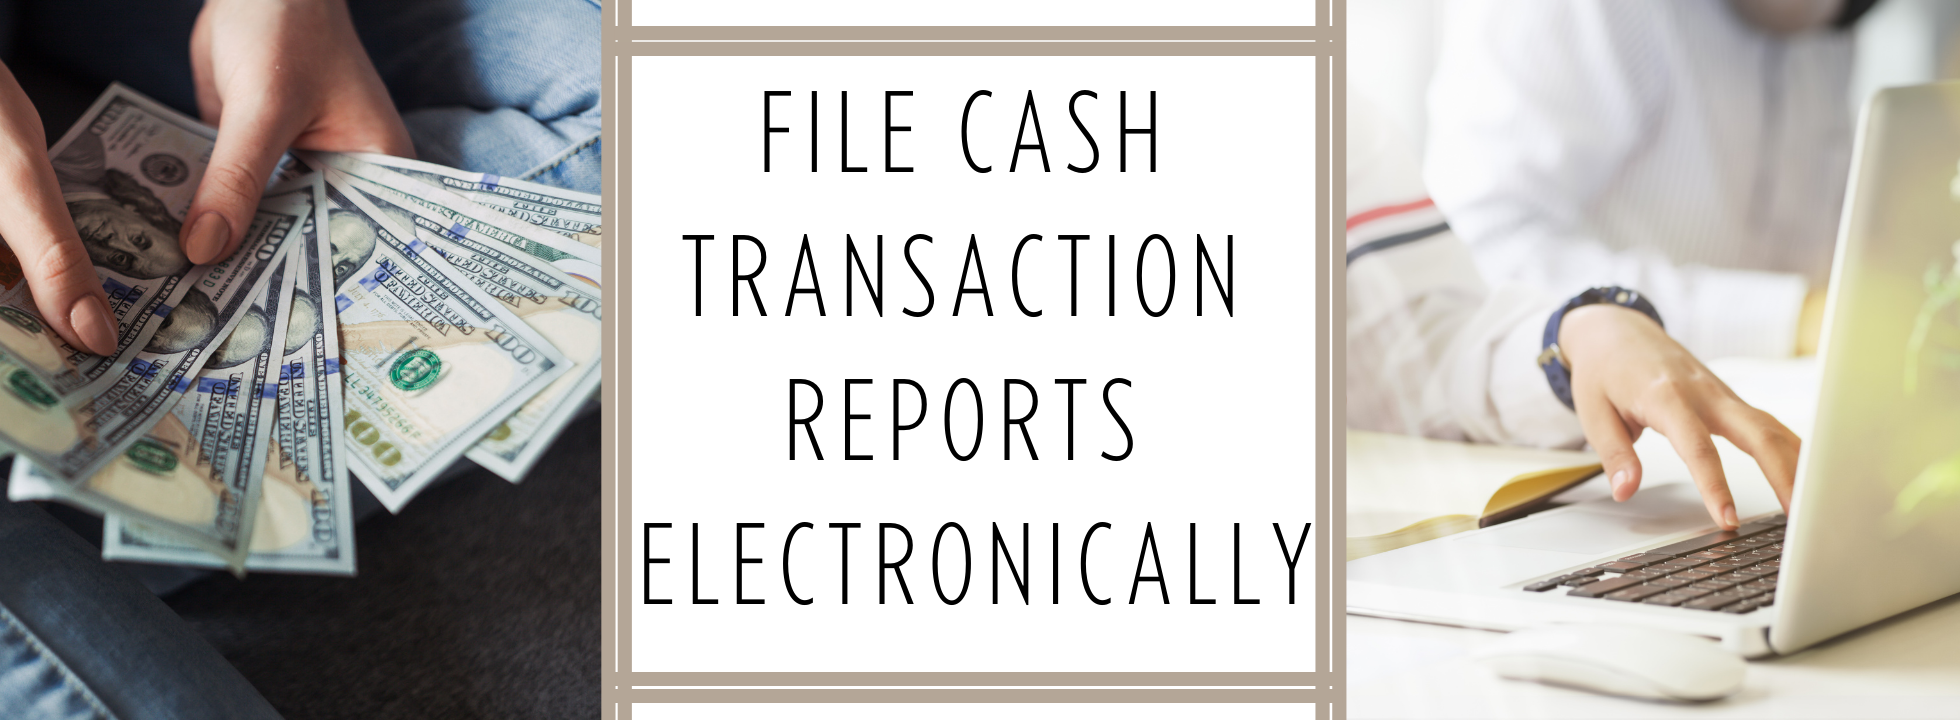 File Cash Transaction Reports Electronically (1)